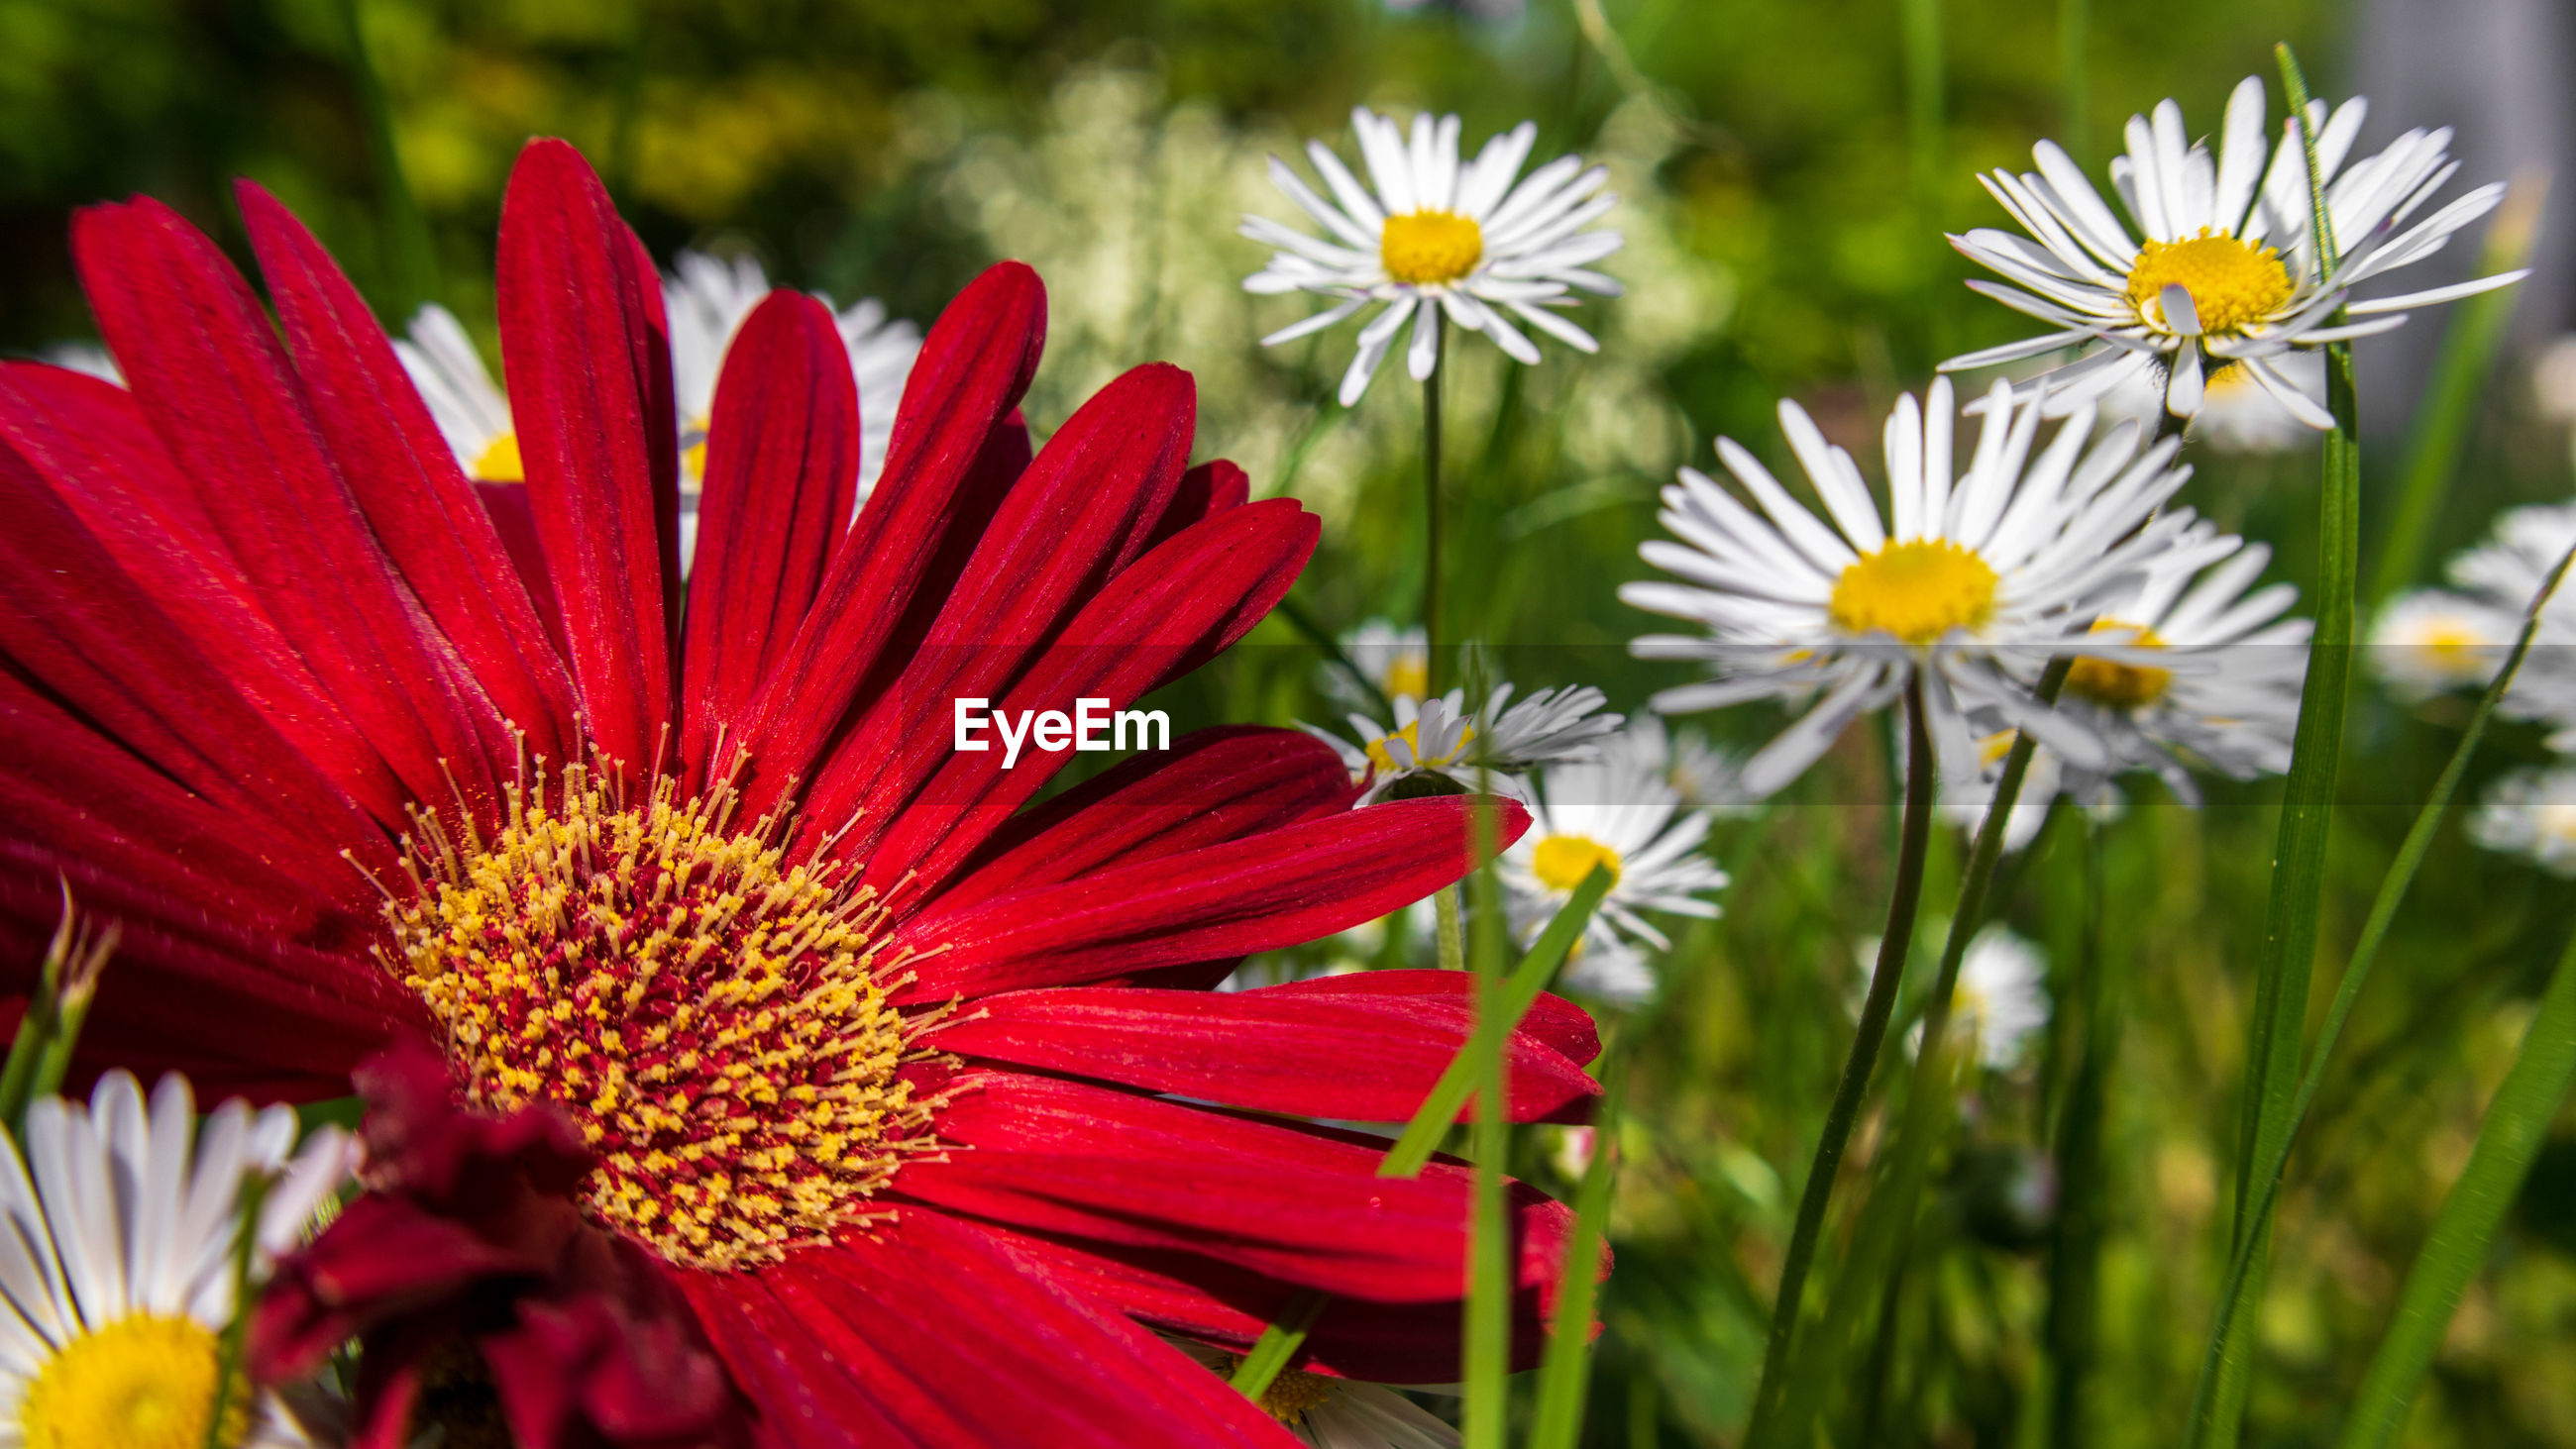 CLOSE-UP OF RED DAISIES